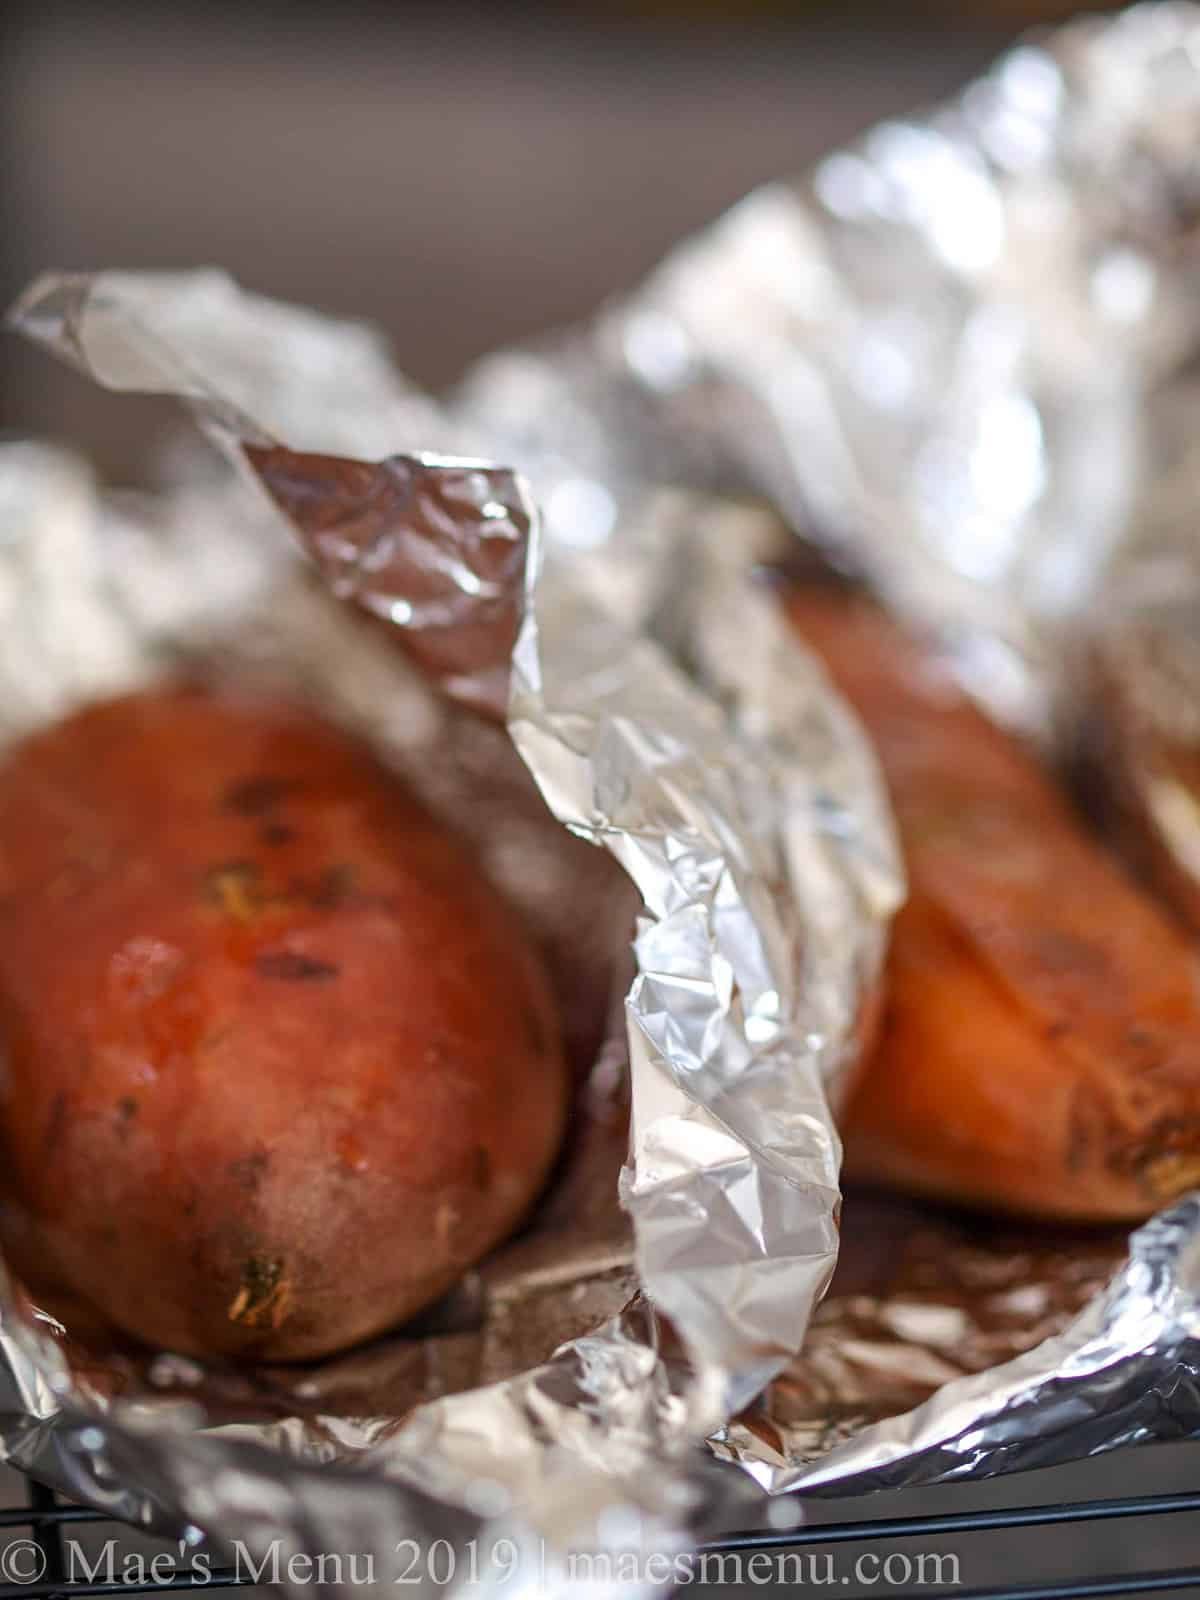 Baked sweet potatoes freshly unwrapped from foil